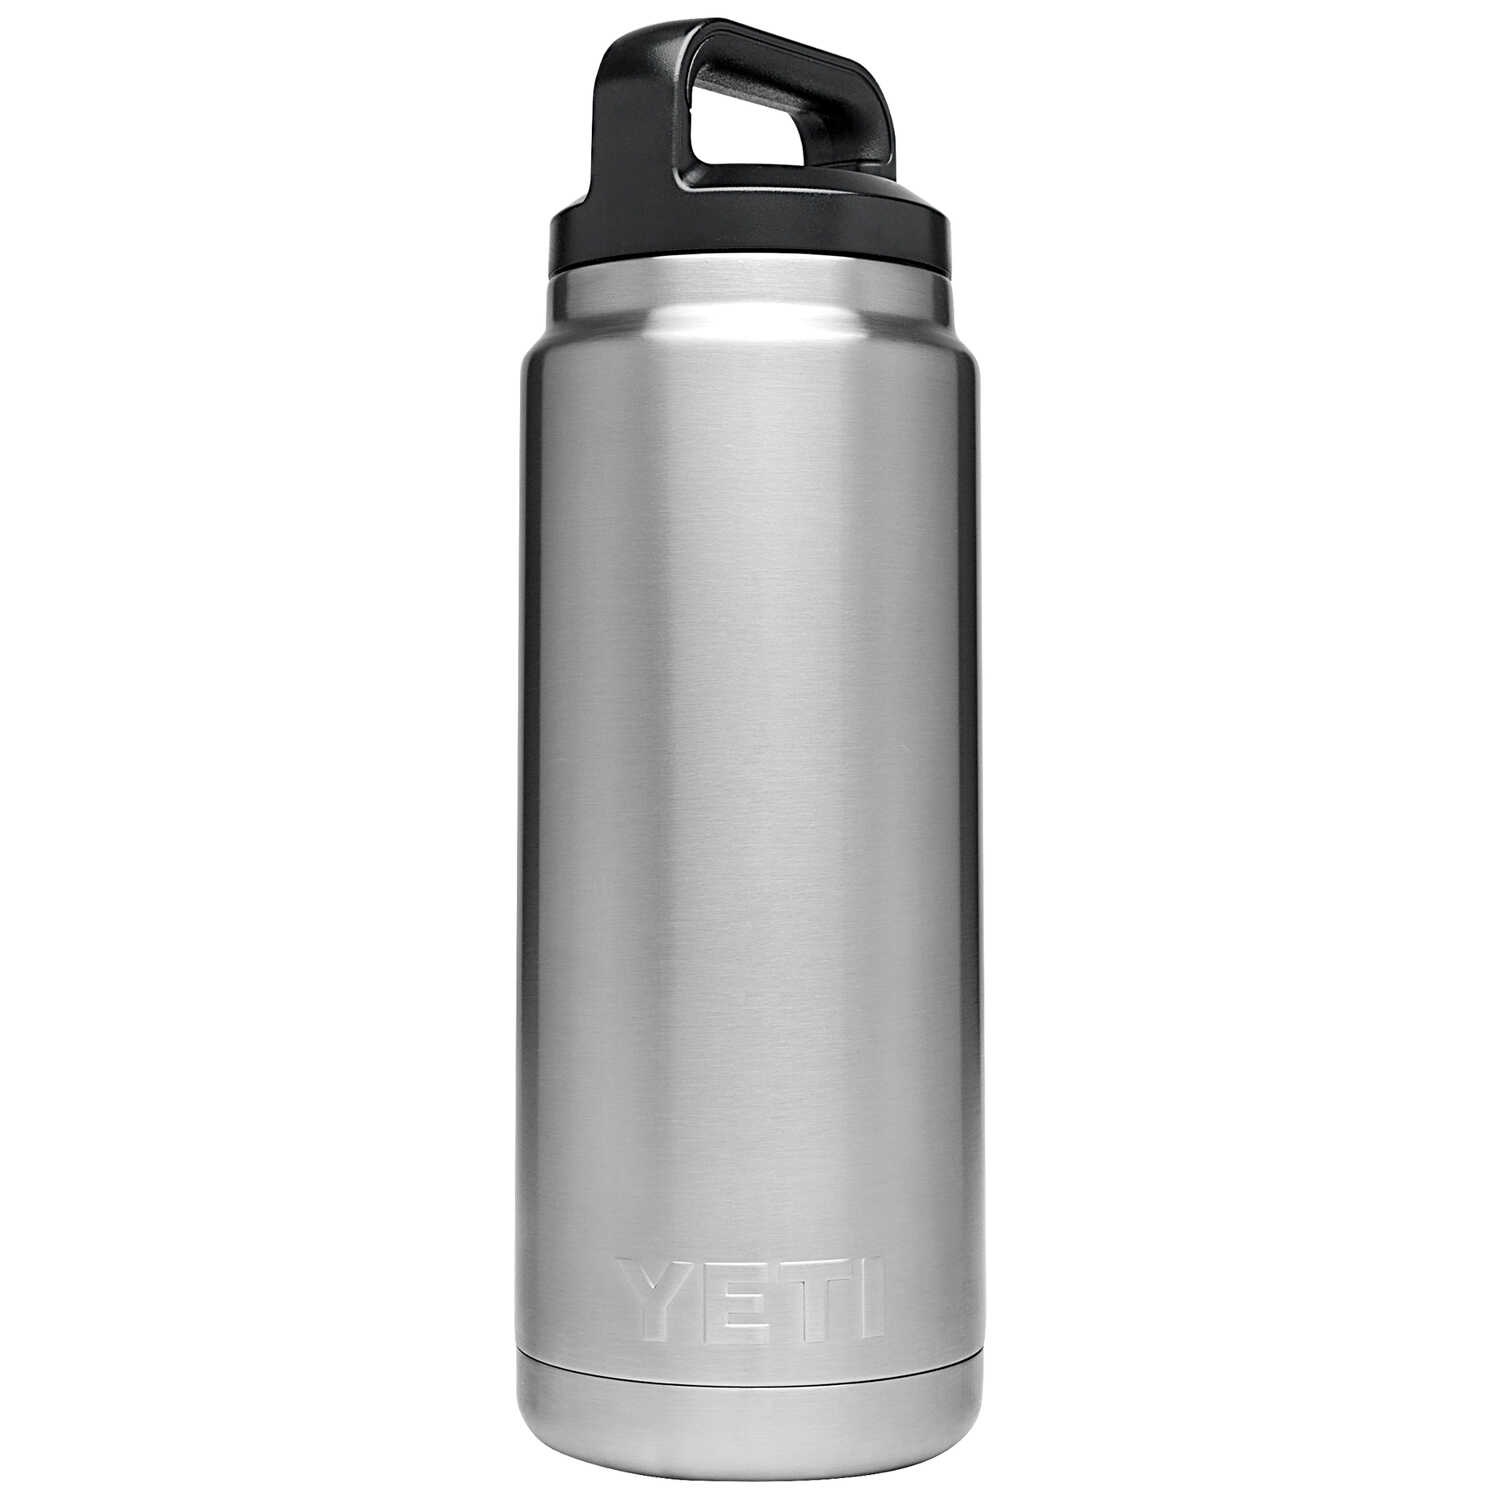 YETI  Rambler  Silver  Stainless Steel  Insulated Bottle  BPA Free 26 oz.